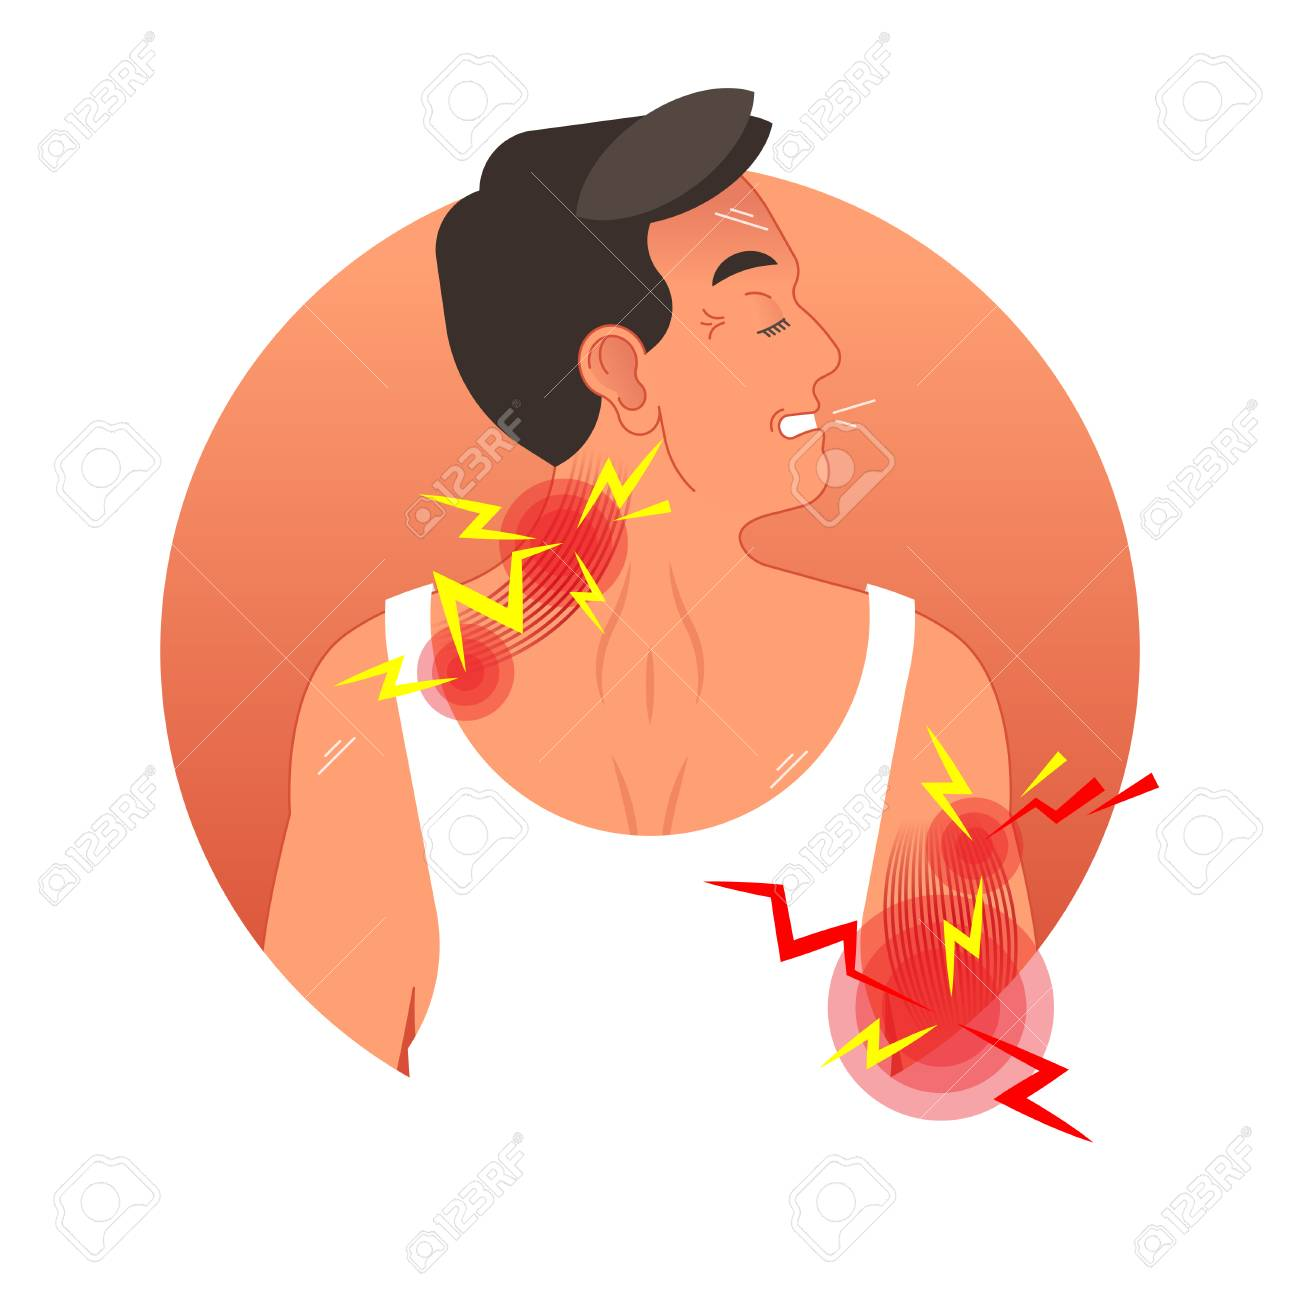 Image result for muscle pain cartoon